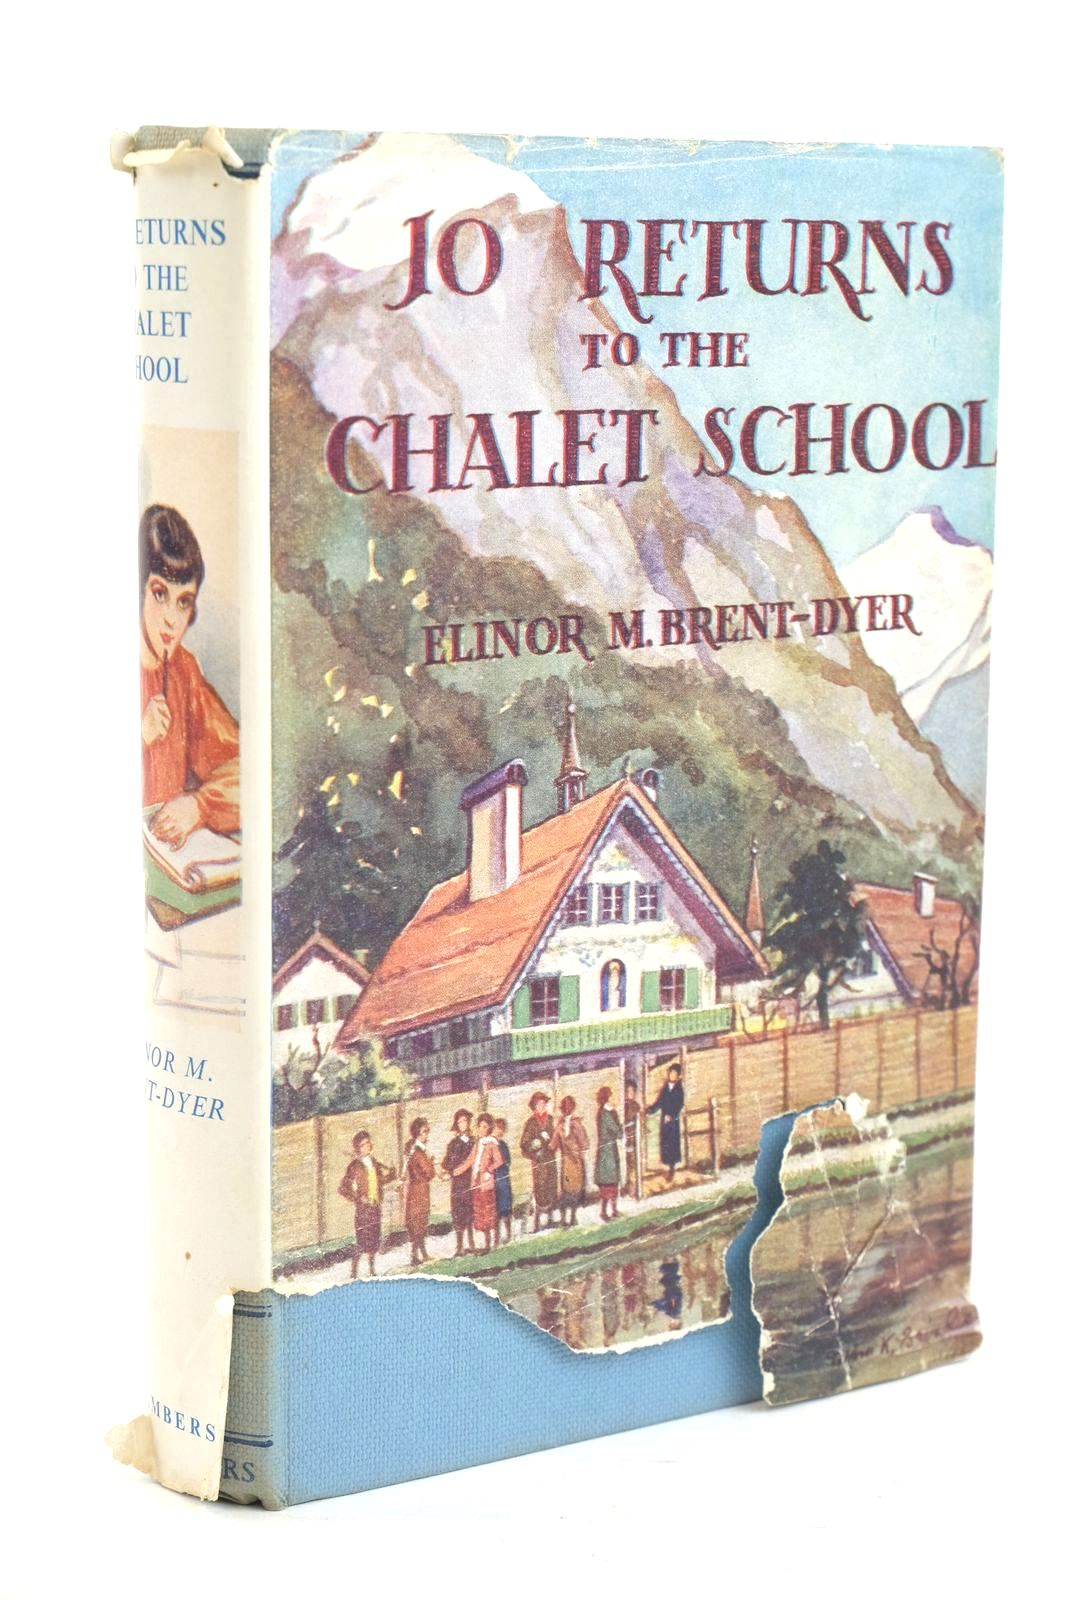 Photo of JO RETURNS TO THE CHALET SCHOOL written by Brent-Dyer, Elinor M. published by W. & R. Chambers Limited (STOCK CODE: 1320045)  for sale by Stella & Rose's Books